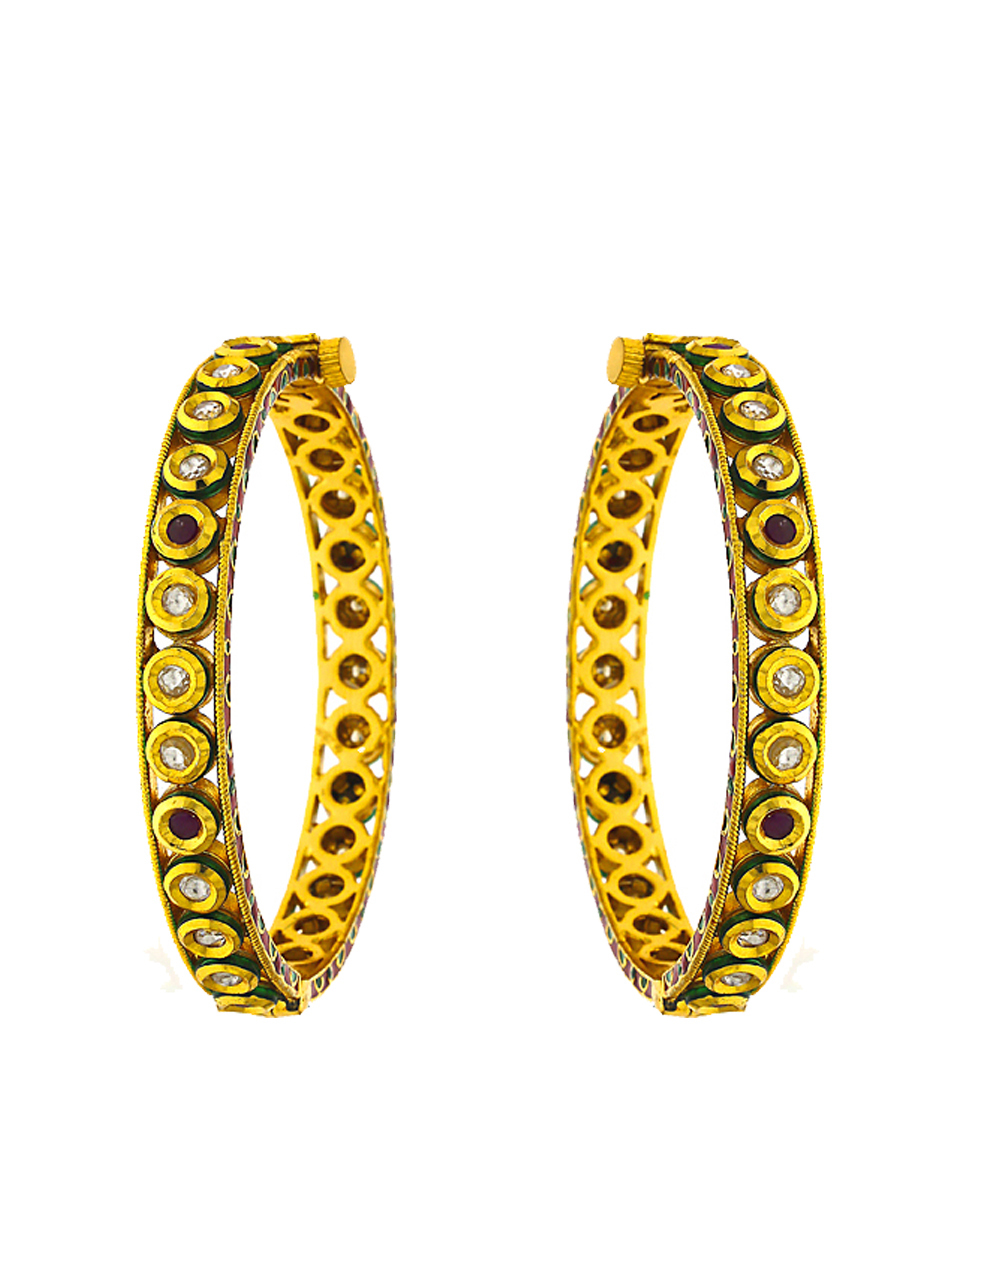 Stunning Golden and Red Colour Golden Finish Traditional Bangles For Women.